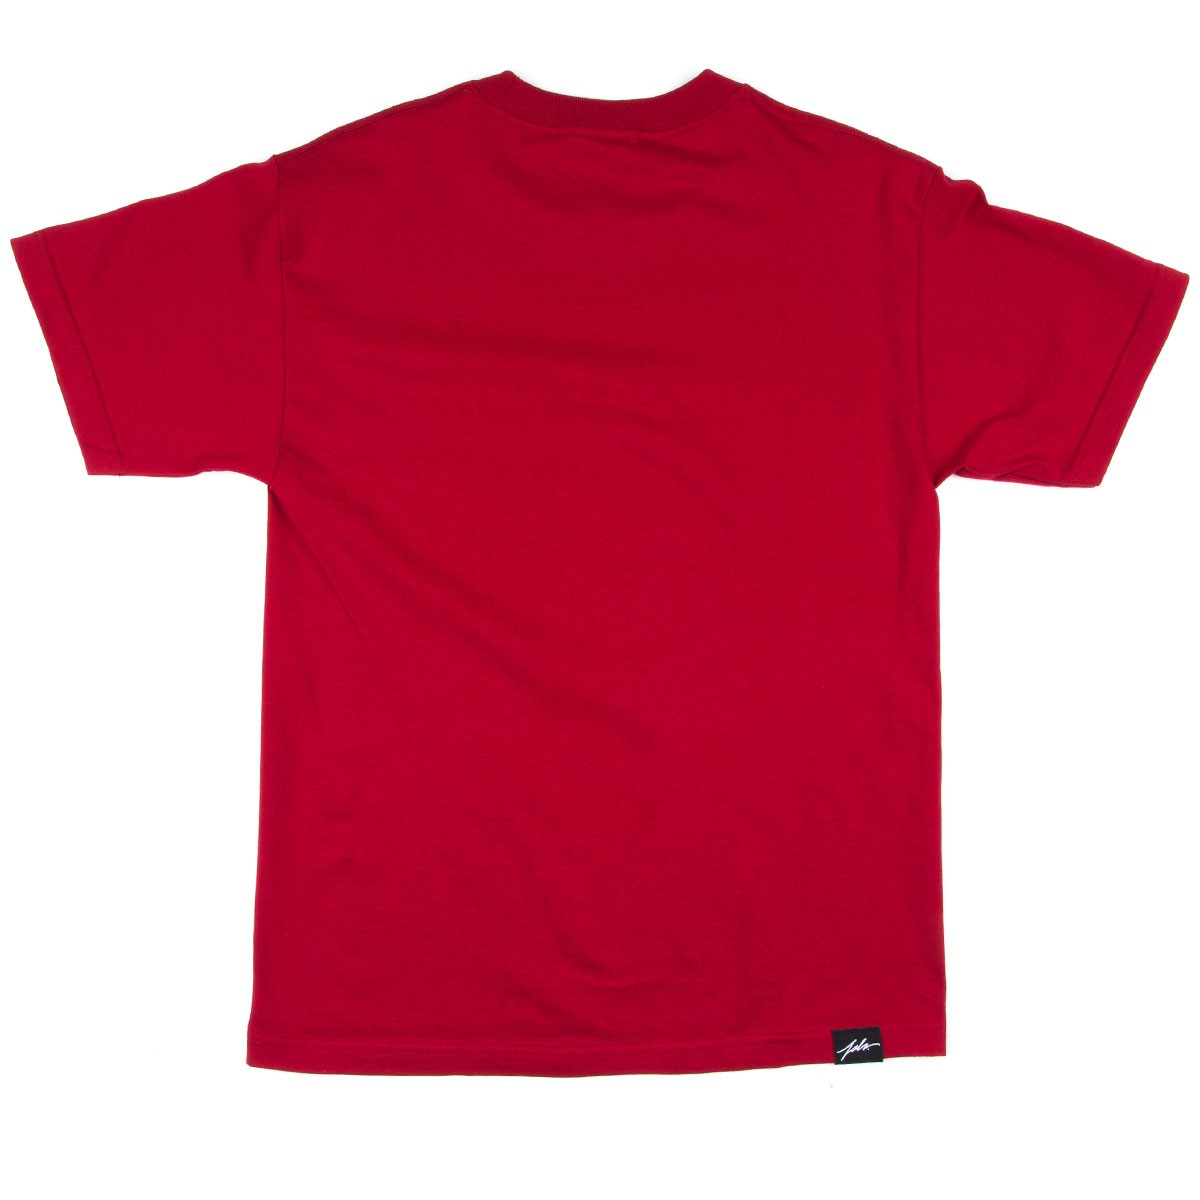 Jslv jax t shirt cardinal for Cardinal color t shirts